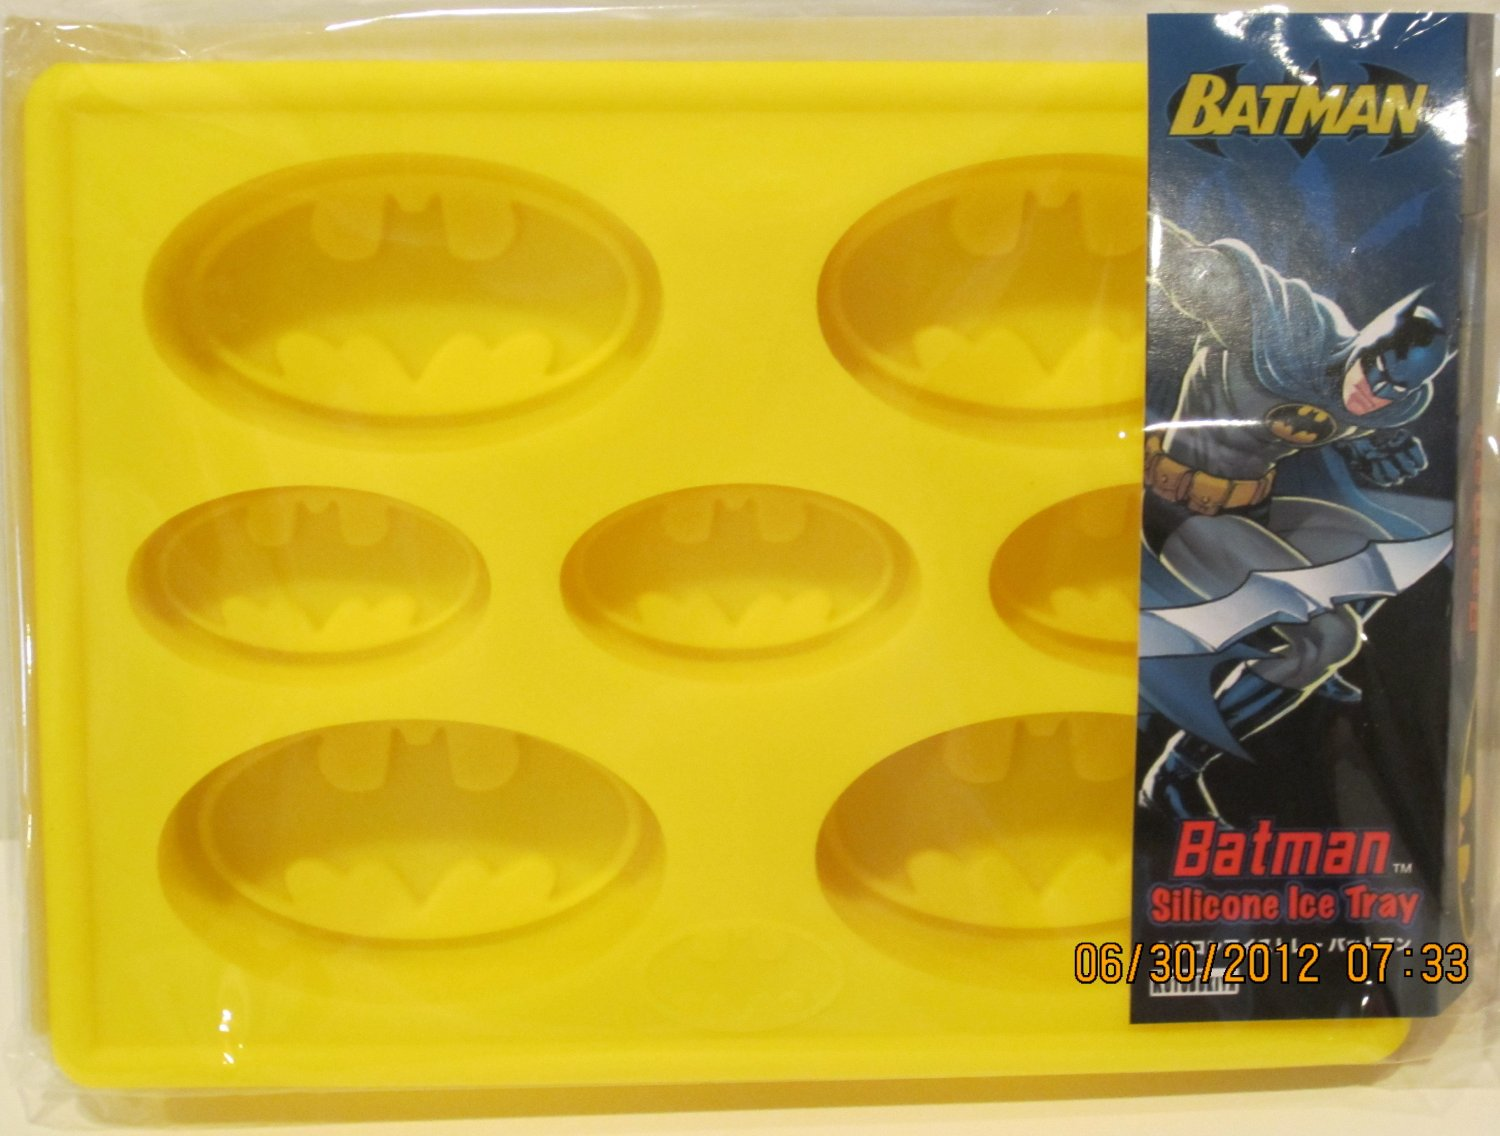 Silicone Ice Tray/Mold - Batman - for Ice, Coffee, or Chocolate